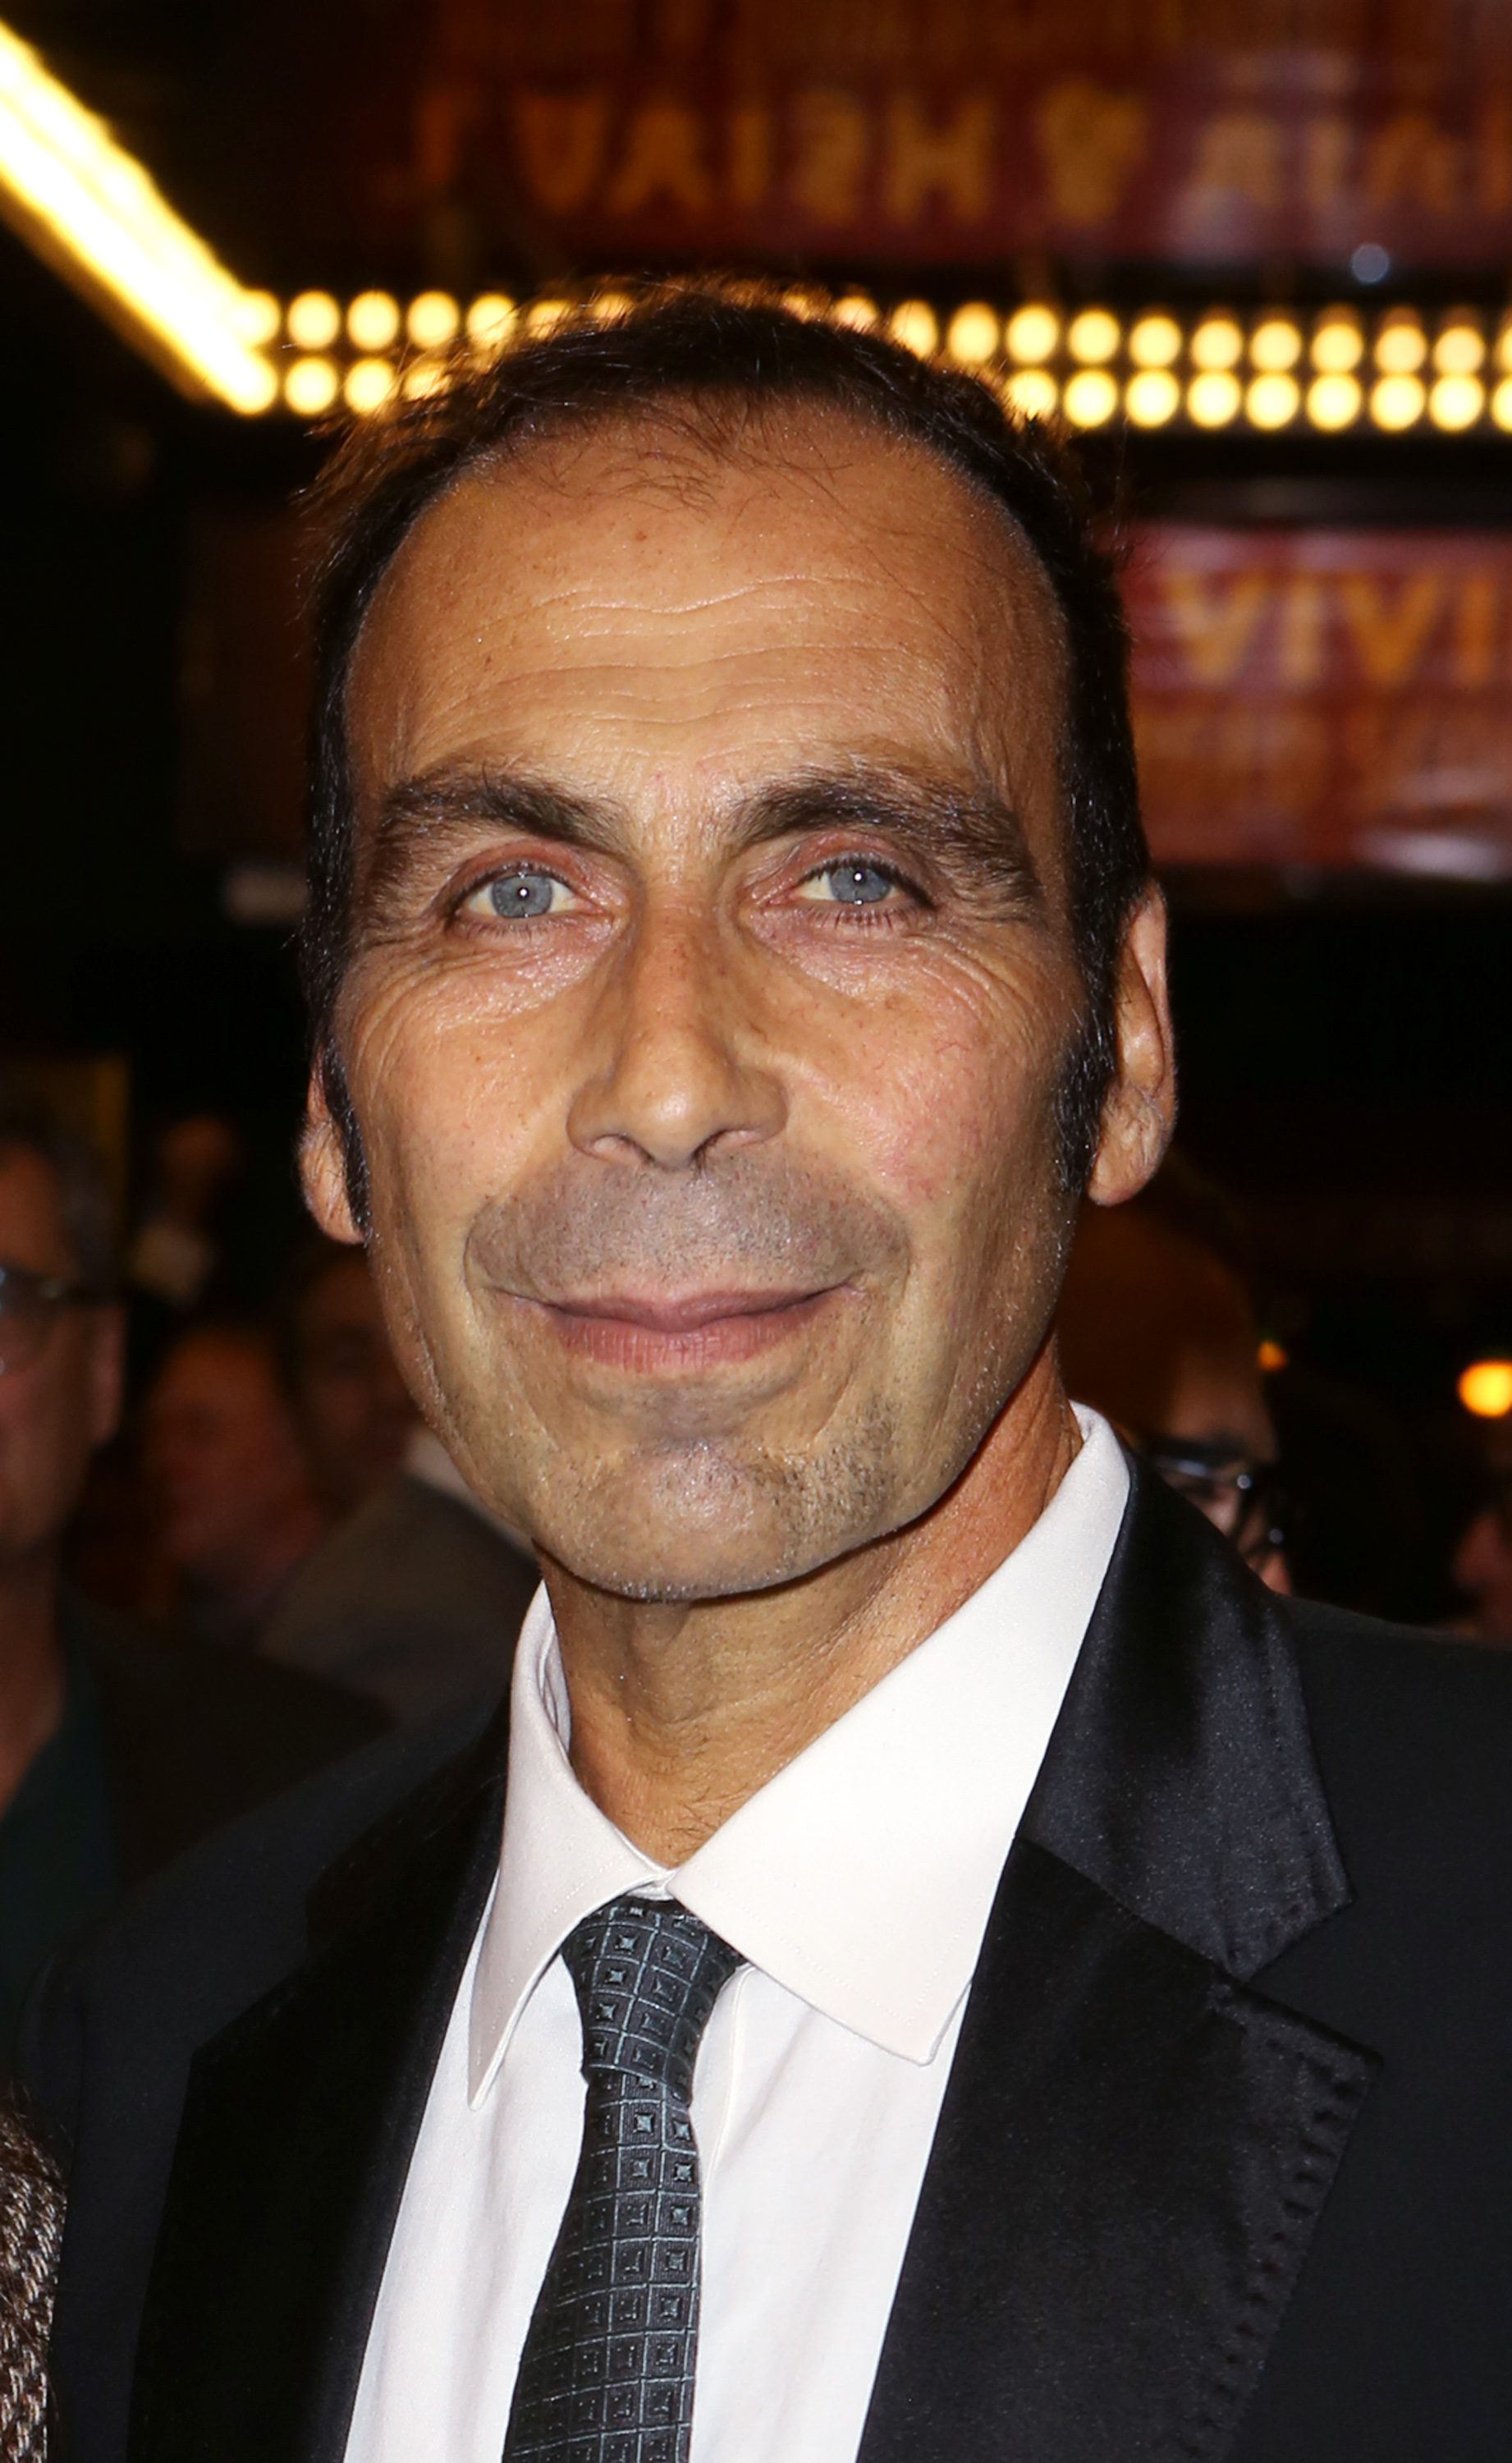 Taylor Negron in New York City on Oct. 28, 2014.